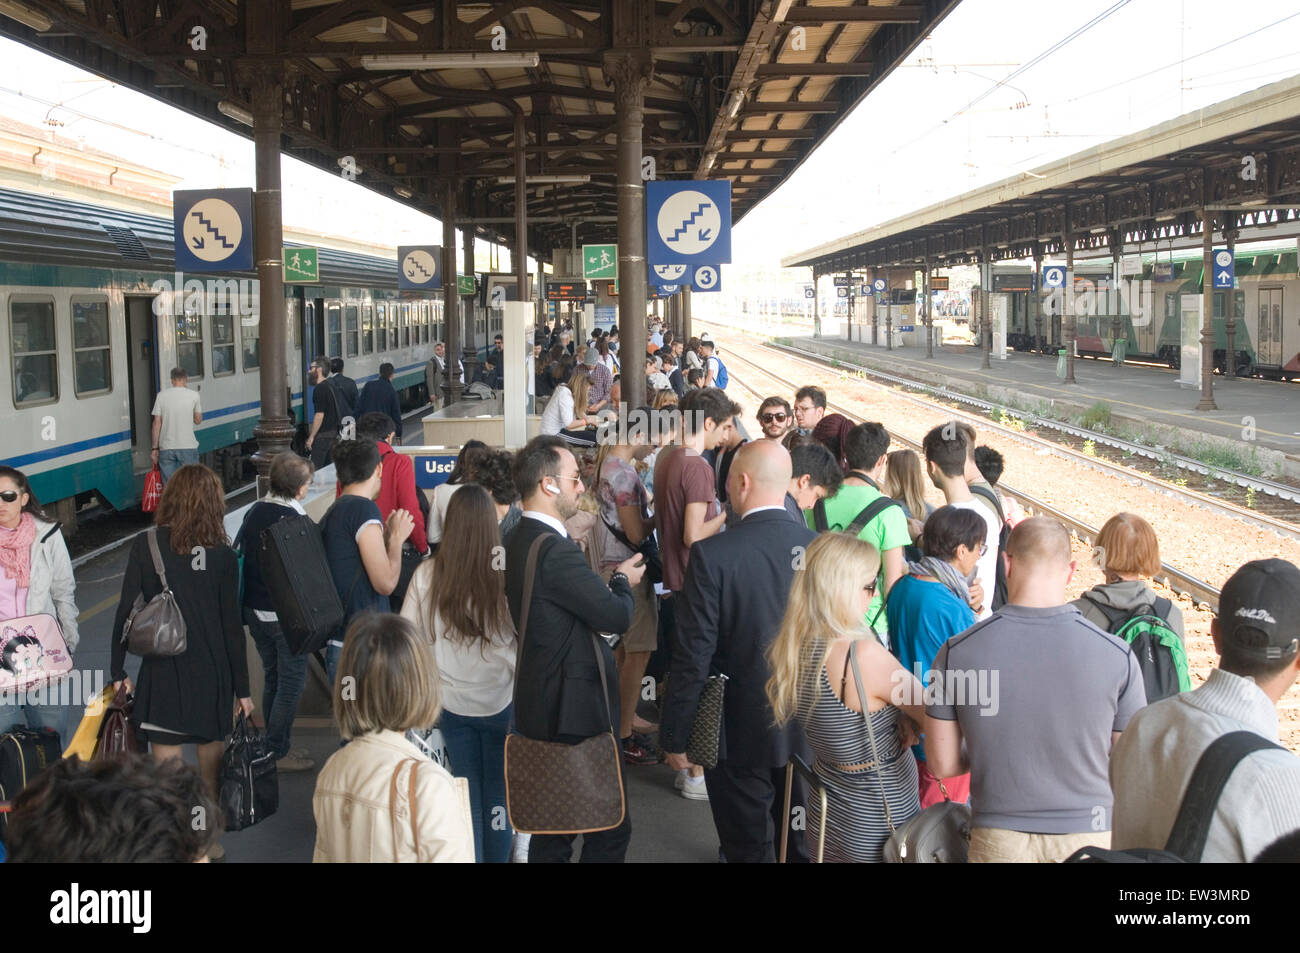 busy packed train station stations platform platforms people commuters commuting italy italian waiting for train - Stock Image